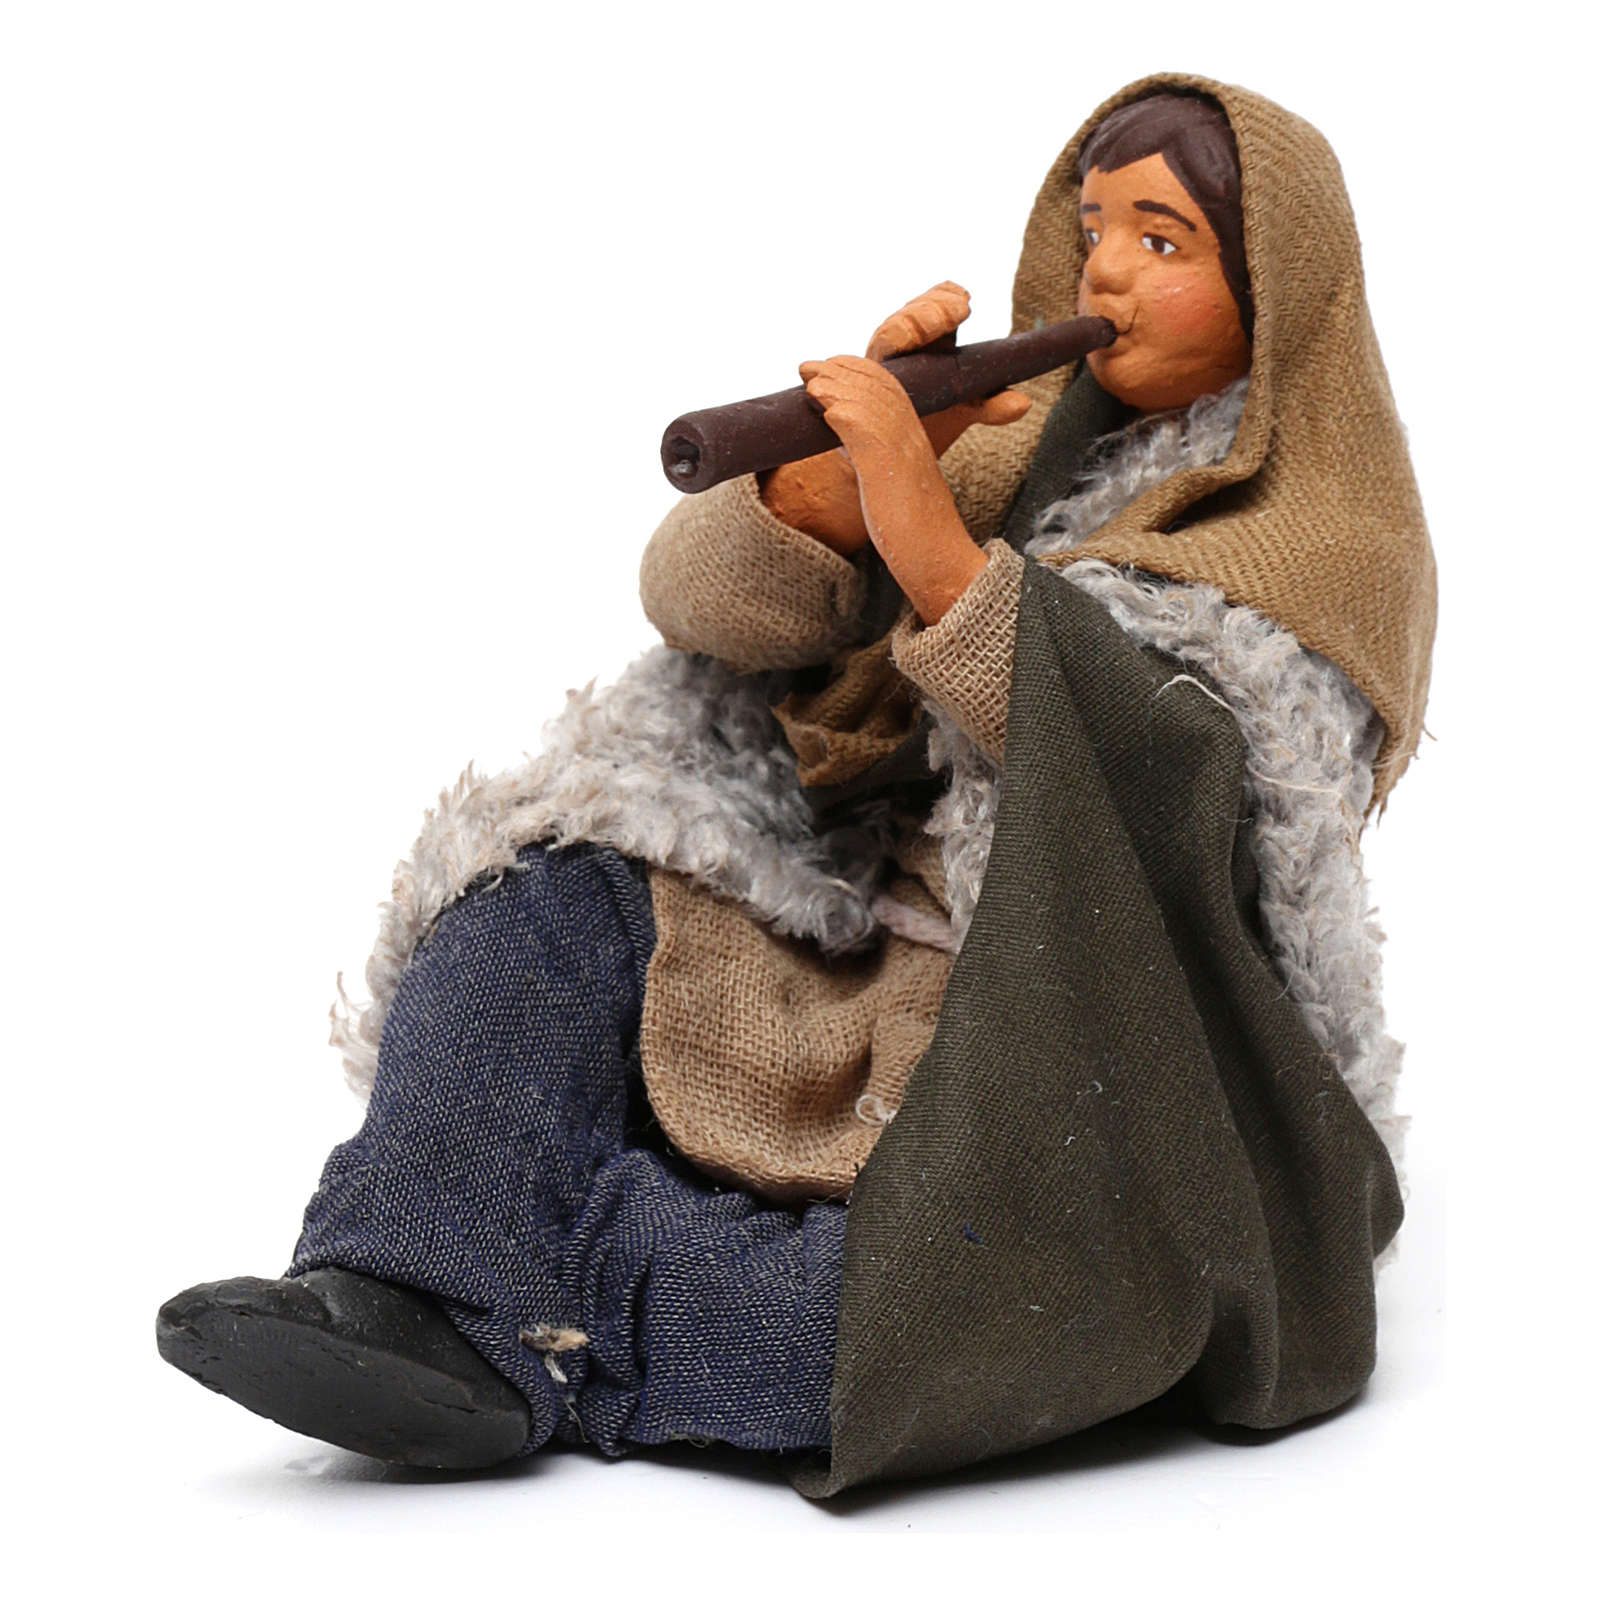 Piper Sitting on the Ground Neapolitan Nativity 12 cm 4